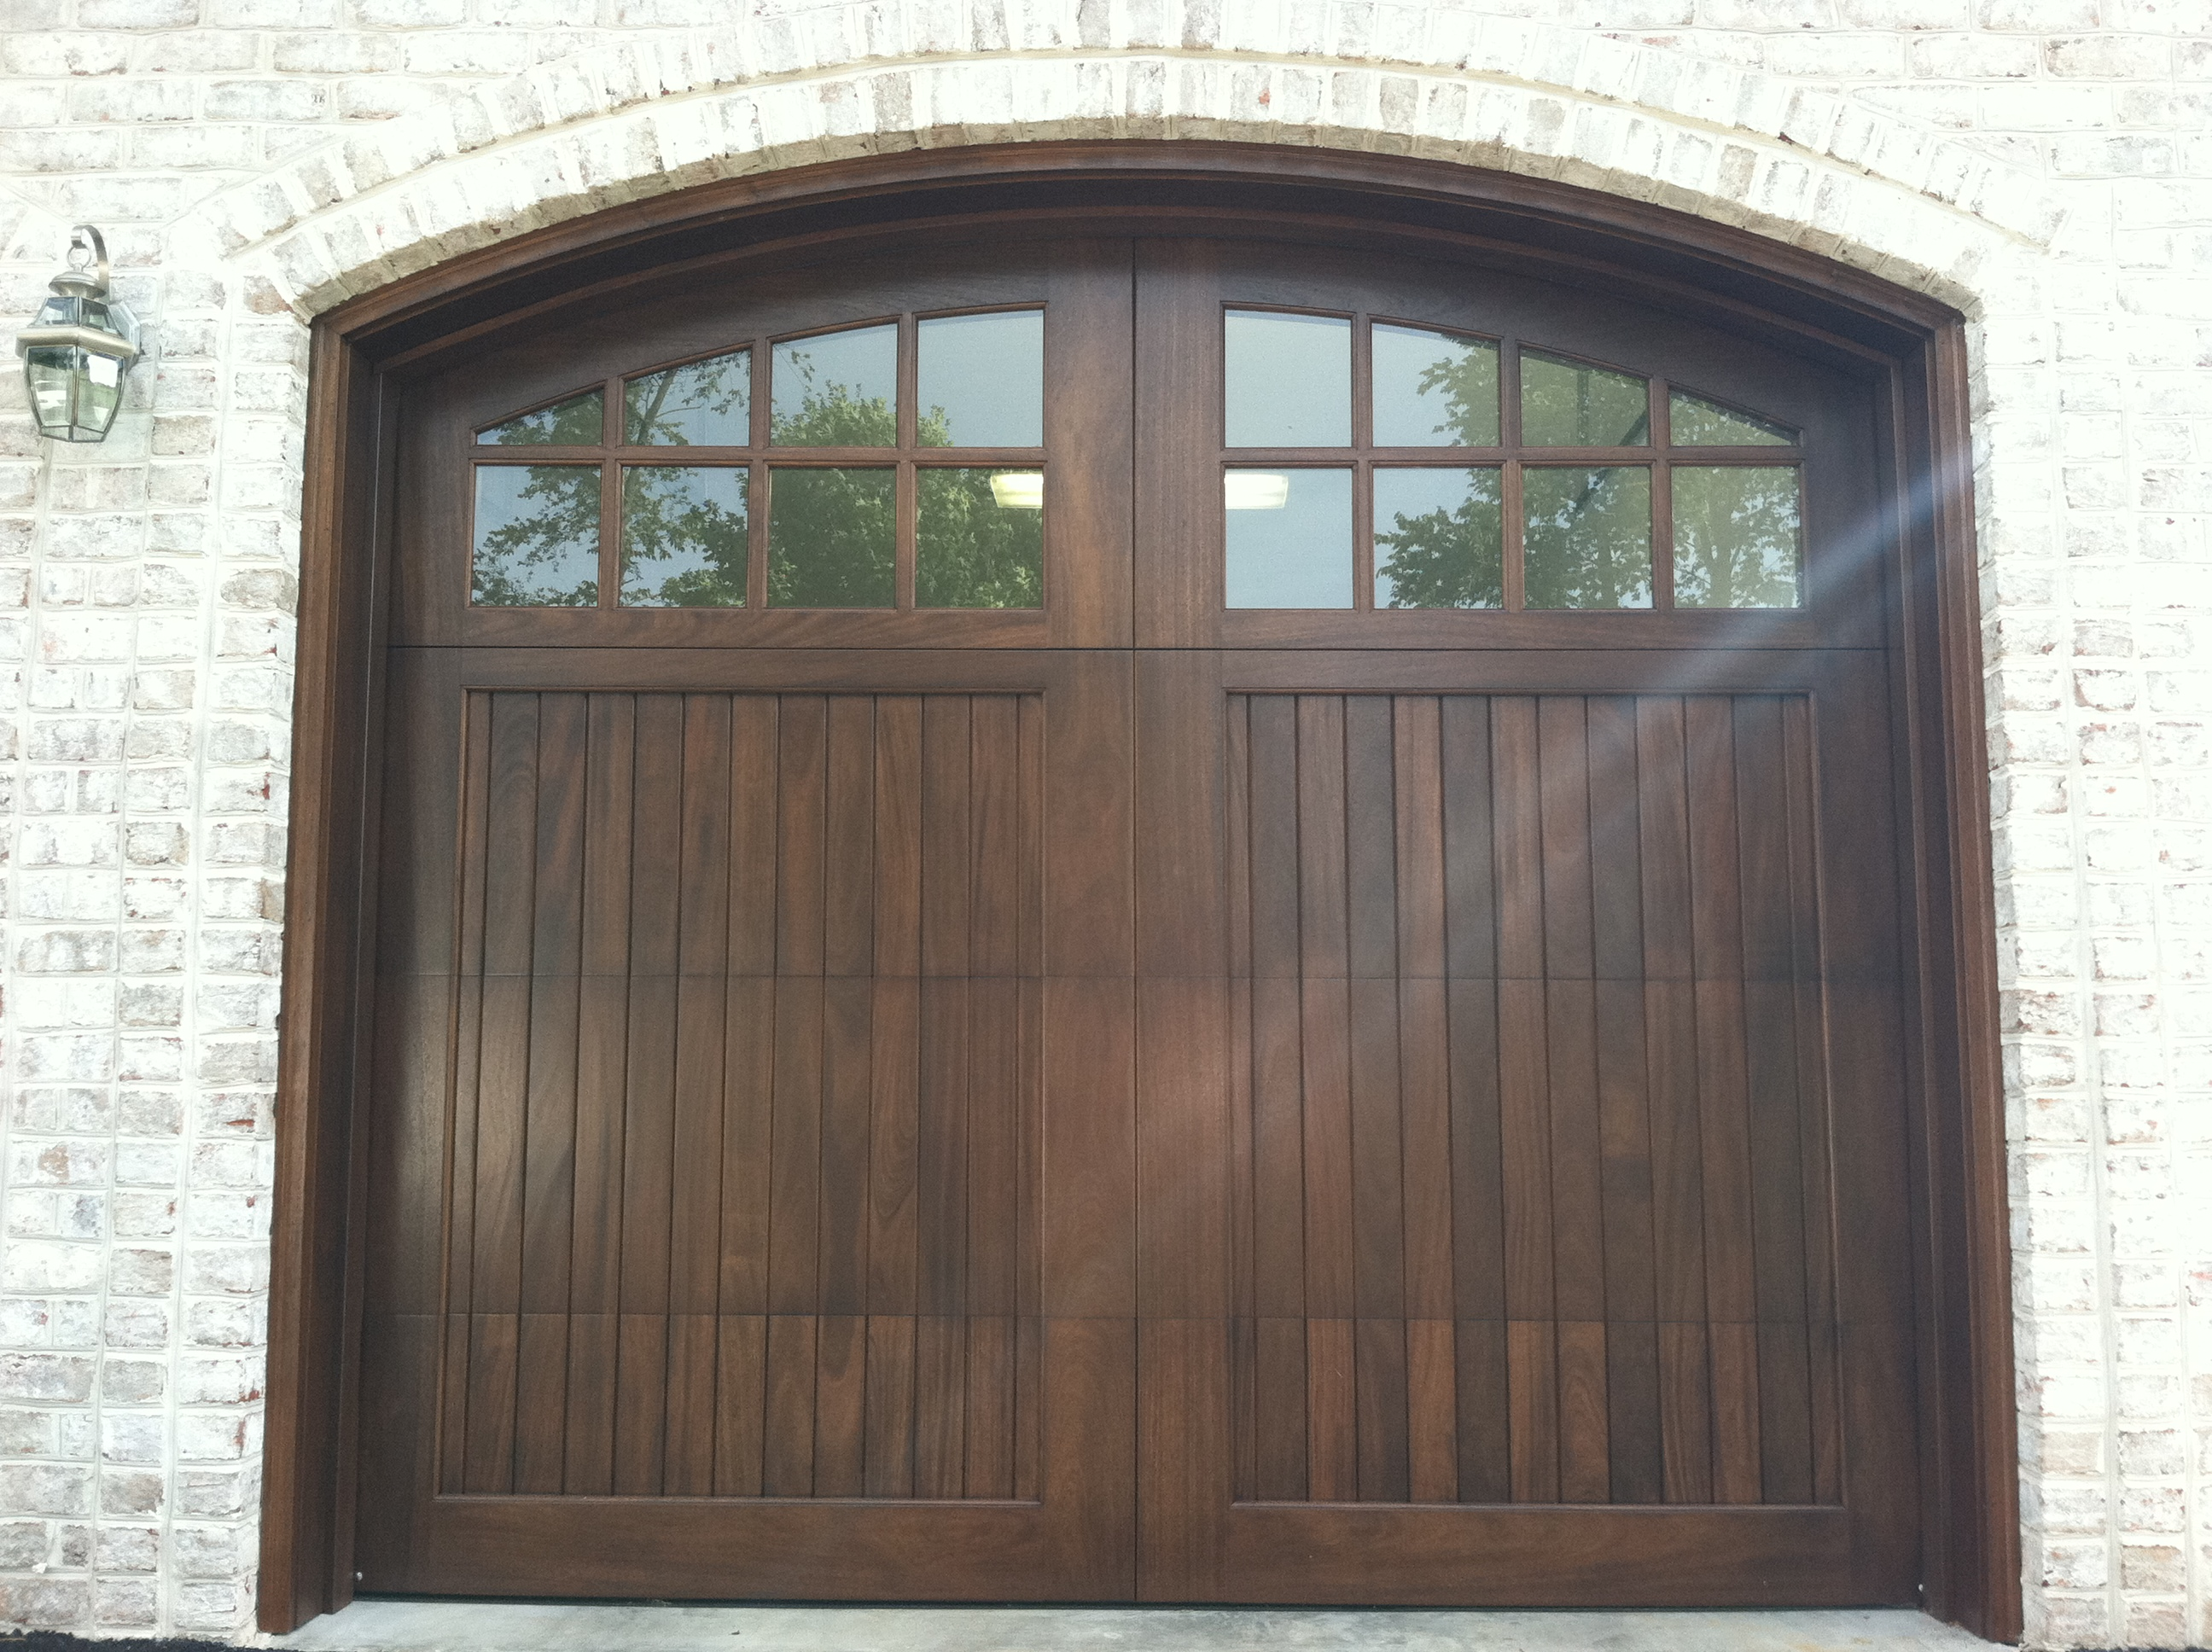 Merveilleux Wood Garage Doors And Carriage Doors   Clearville, Pennsylvania